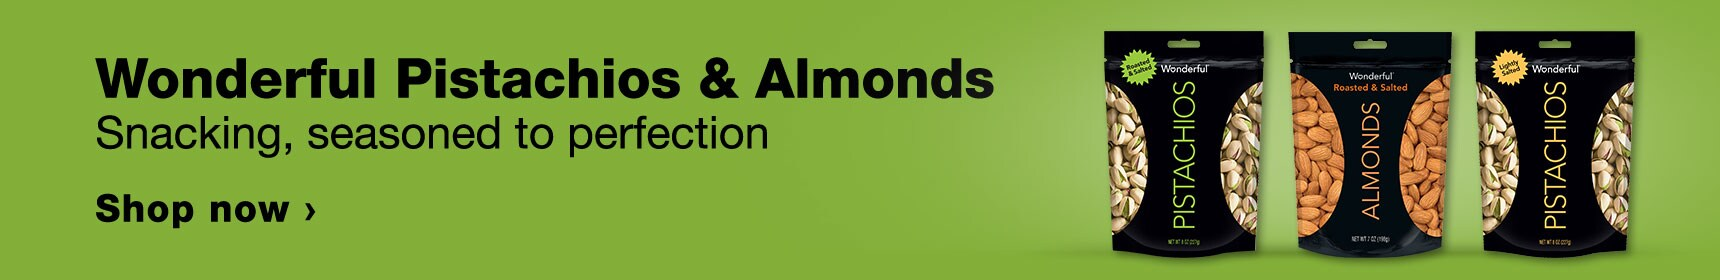 Wonderful Pistachios & Almonds. Shacking, seasoned to perfection. Shop now.